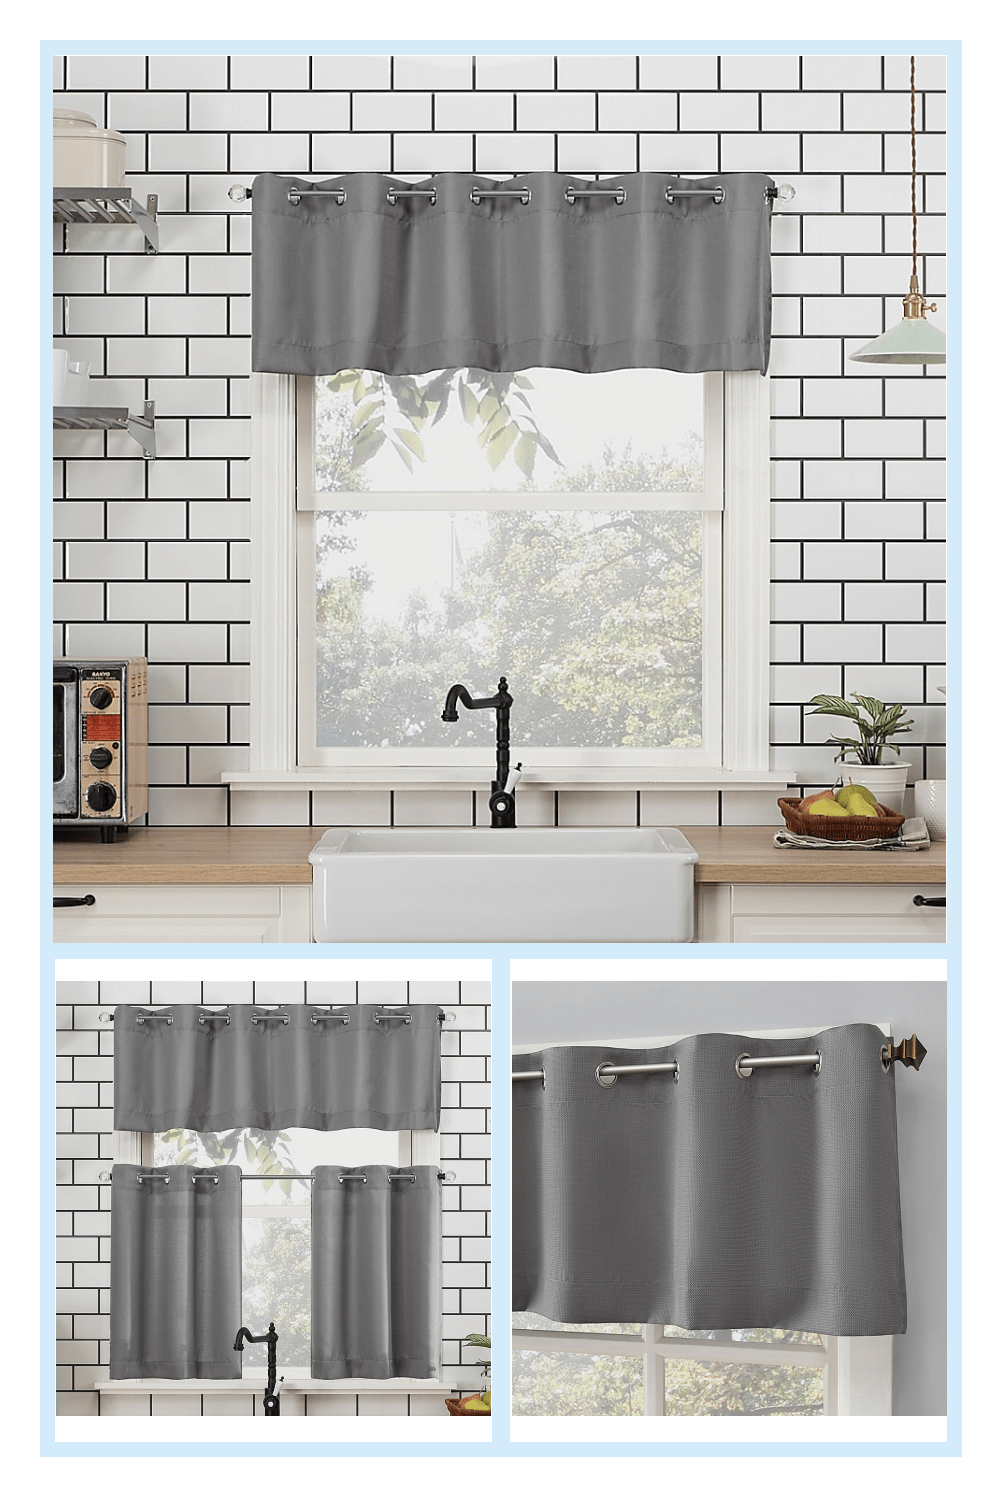 No 918 Dylan Casual Textured 14 Kitchen Curtain Valance In Gray Grey Casual Curtain Dylan Gray Grey Kitchen N Kitchen Curtains Valance Curtains Curtains